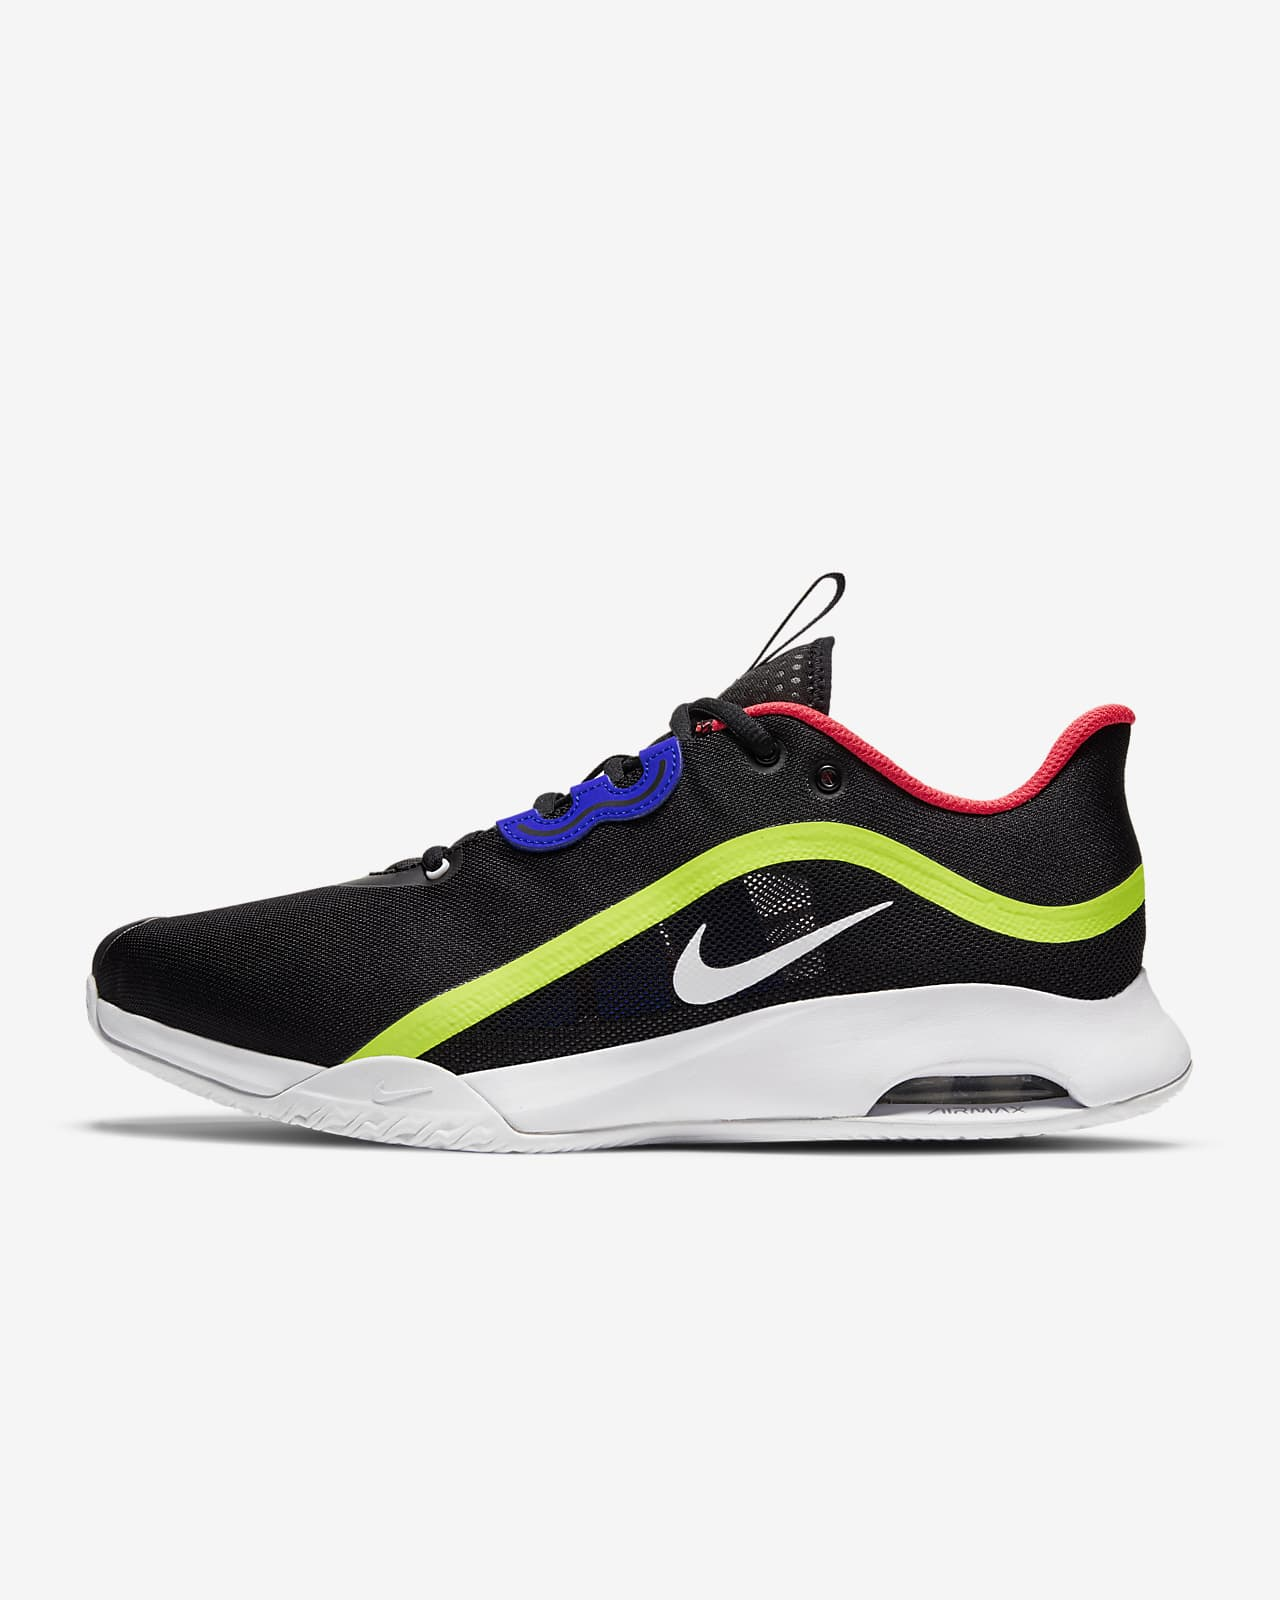 Scarpa da tennis per campi in cemento NikeCourt Air Max Volley - Uomo